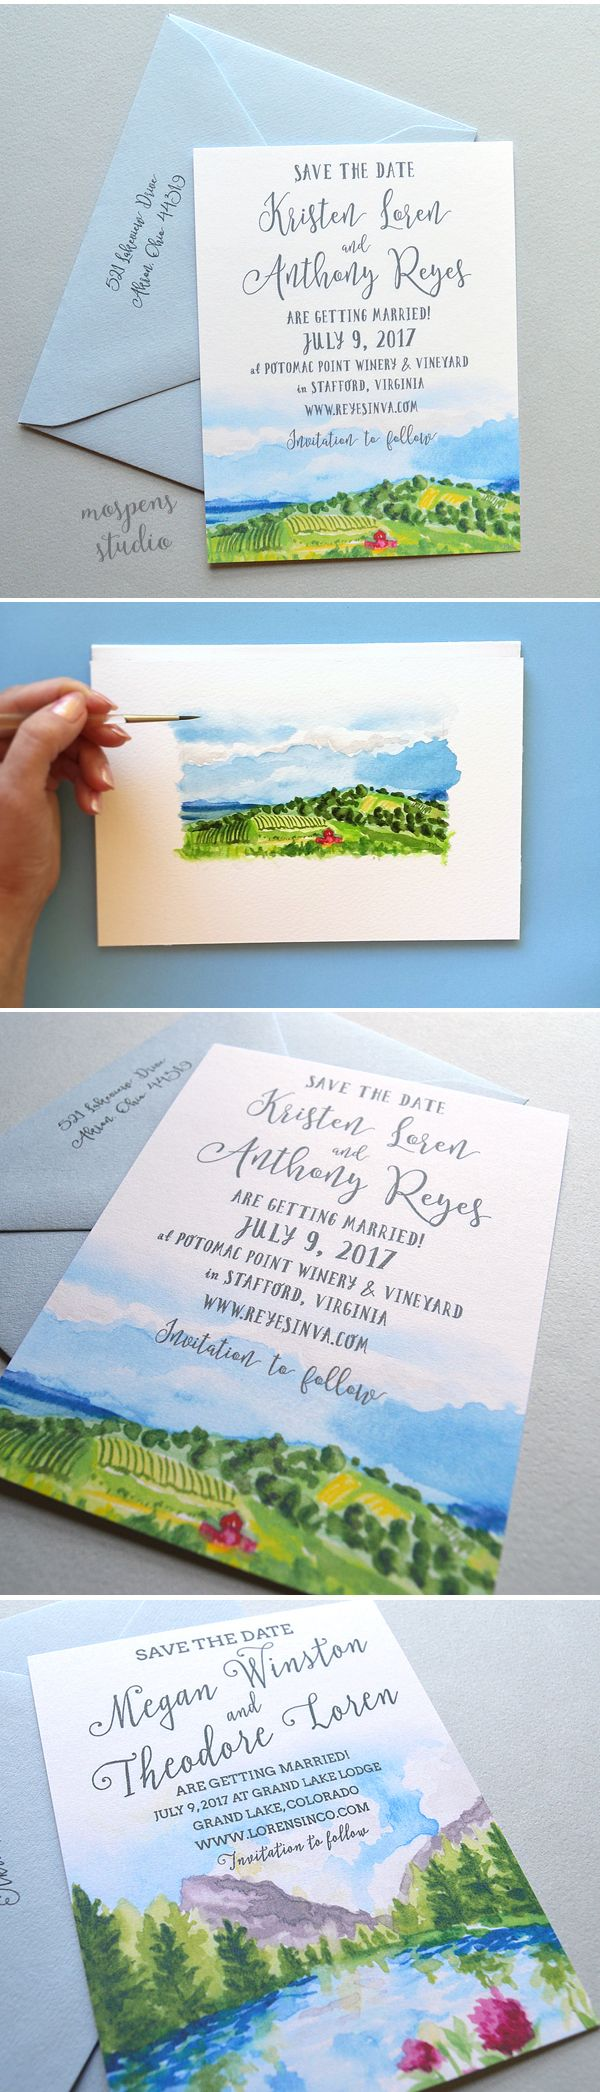 Best 25 Save the date illustrations ideas on Pinterest